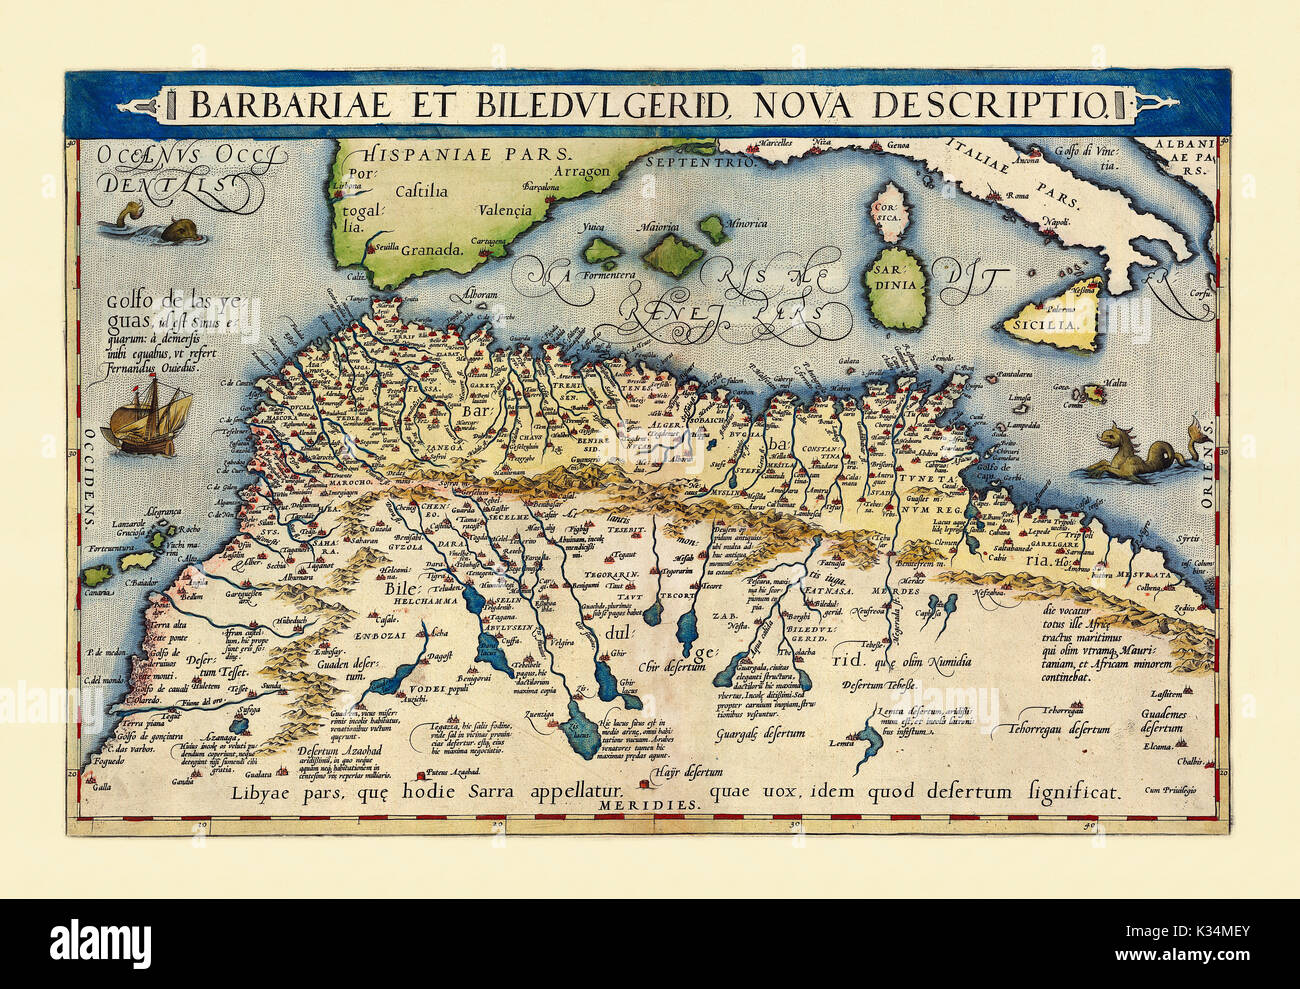 Old map of North Africa. Excellent state of preservation realized